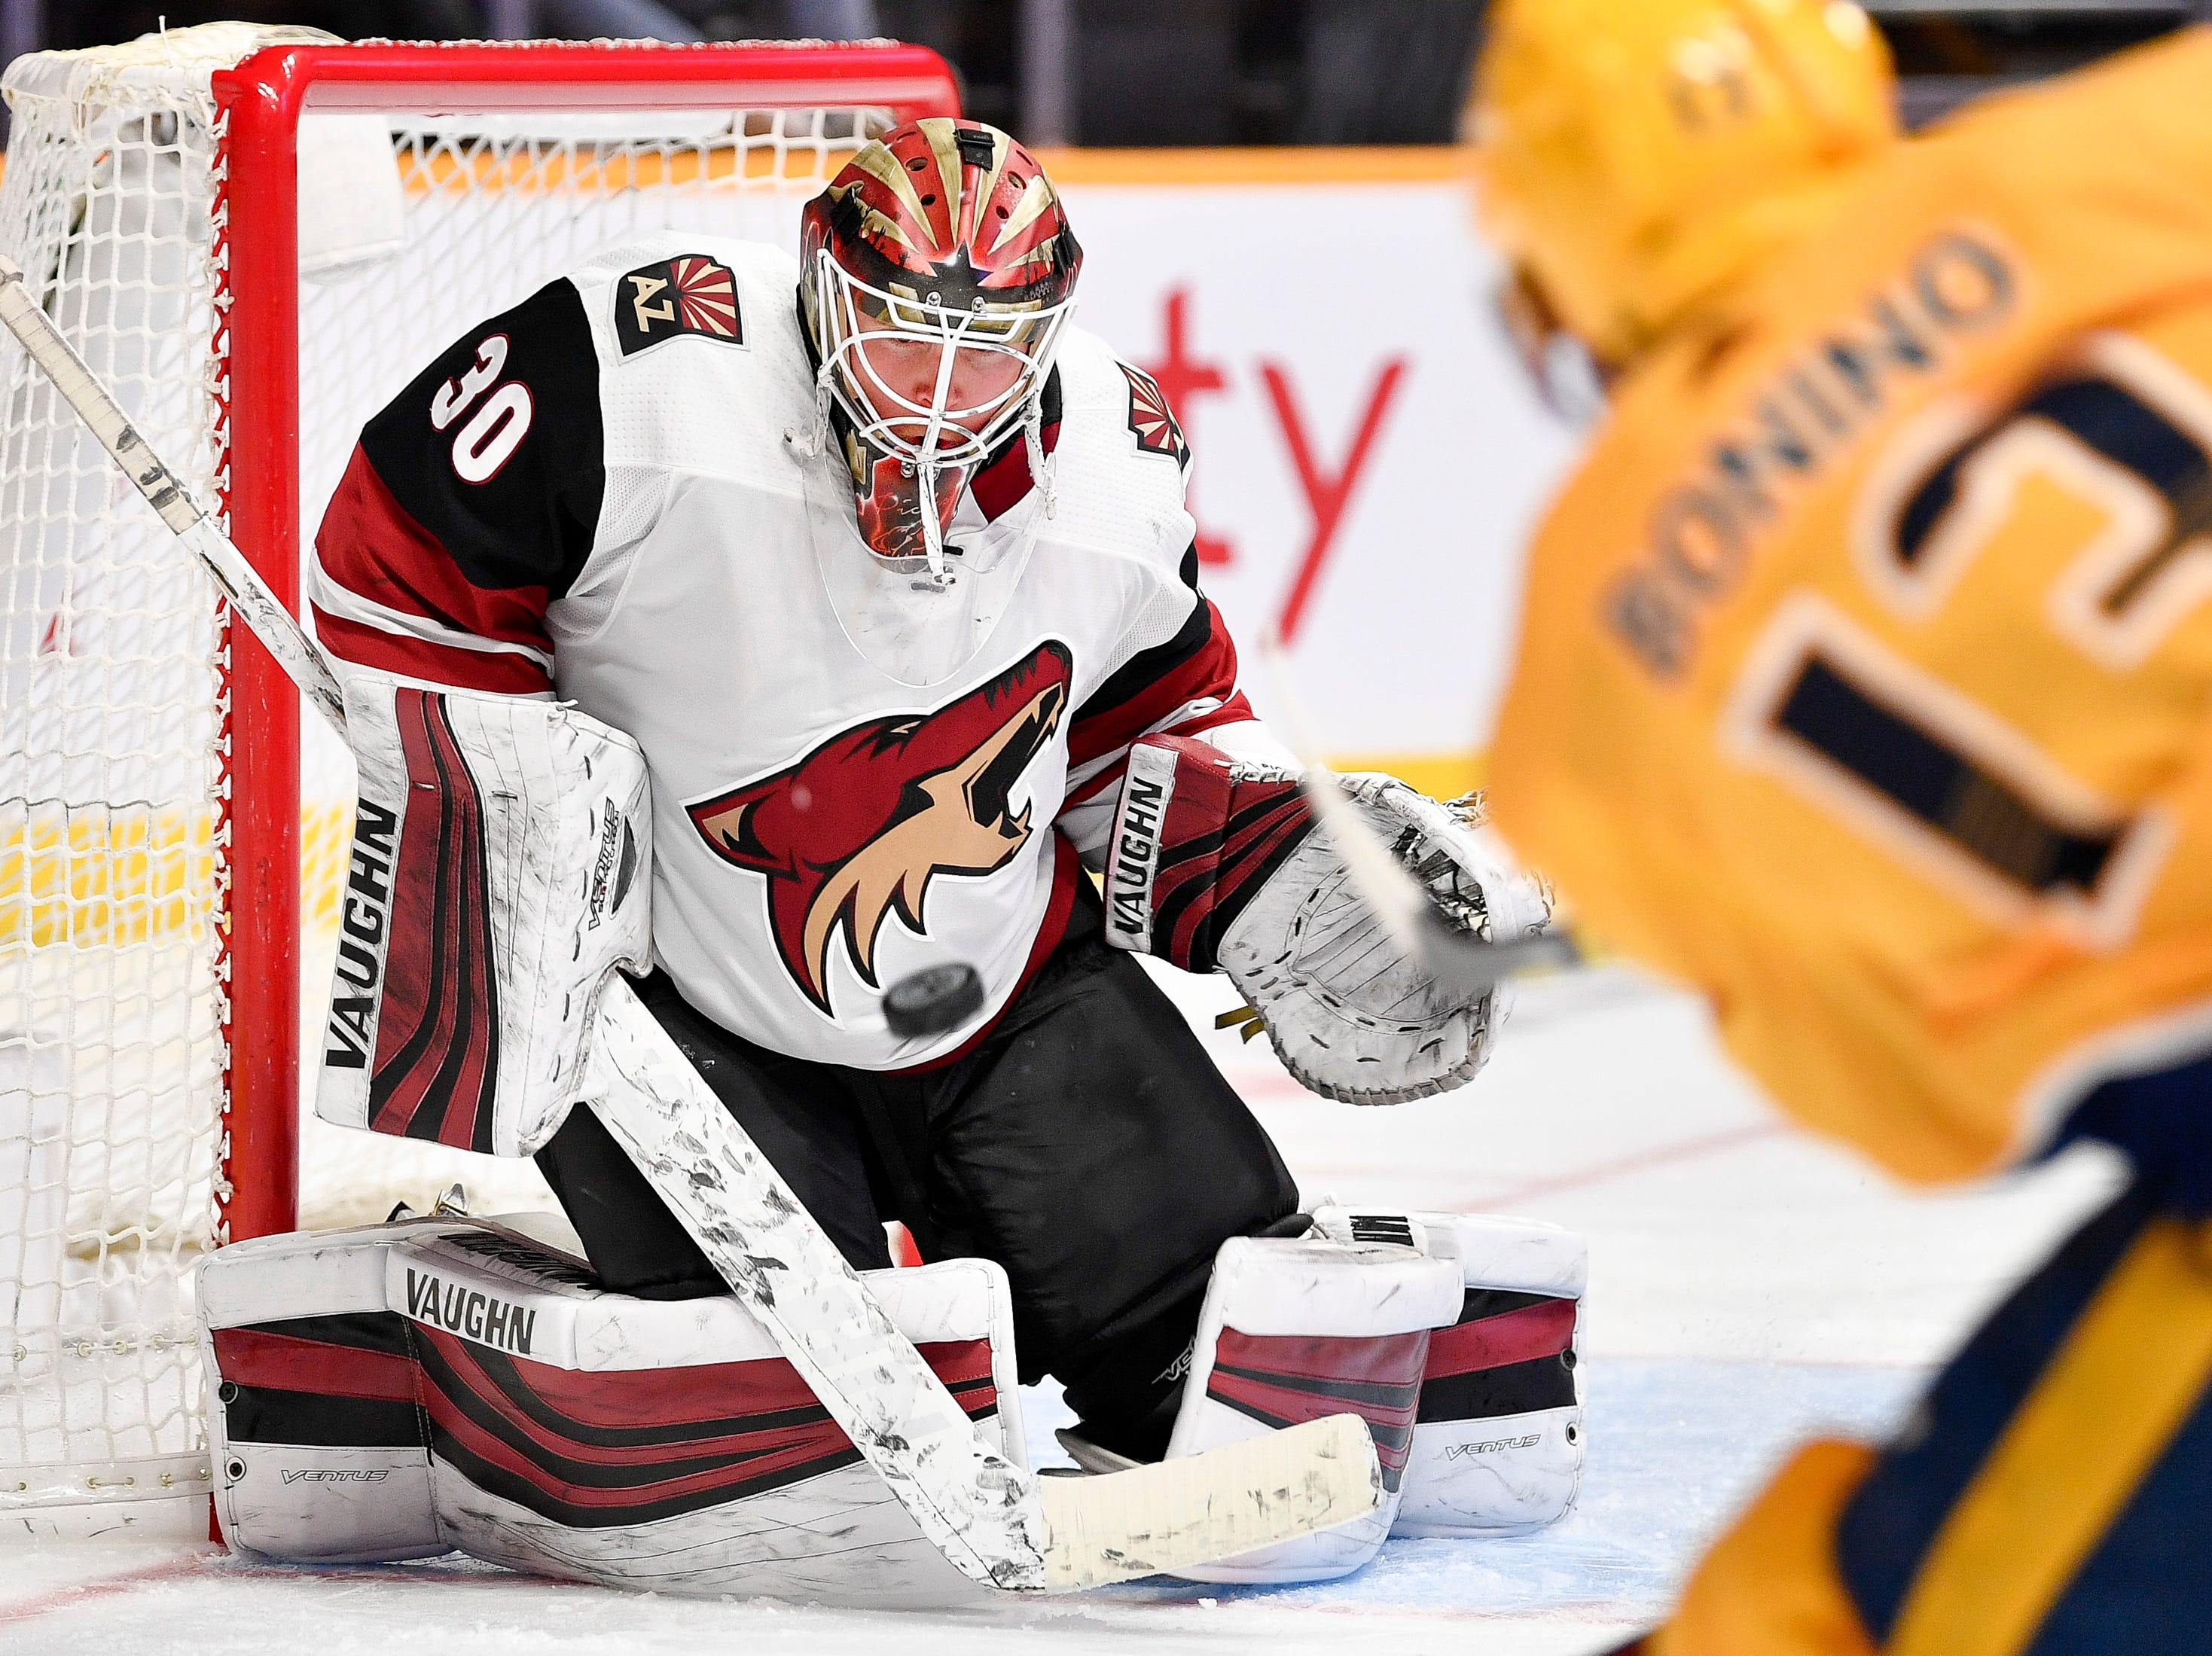 Nashville Predators center Nick Bonino (13) shoots into Arizona Coyotes goaltender Calvin Pickard (30) during the third period at Bridgestone Arena in Nashville, Tenn., Tuesday, Feb. 5, 2019.